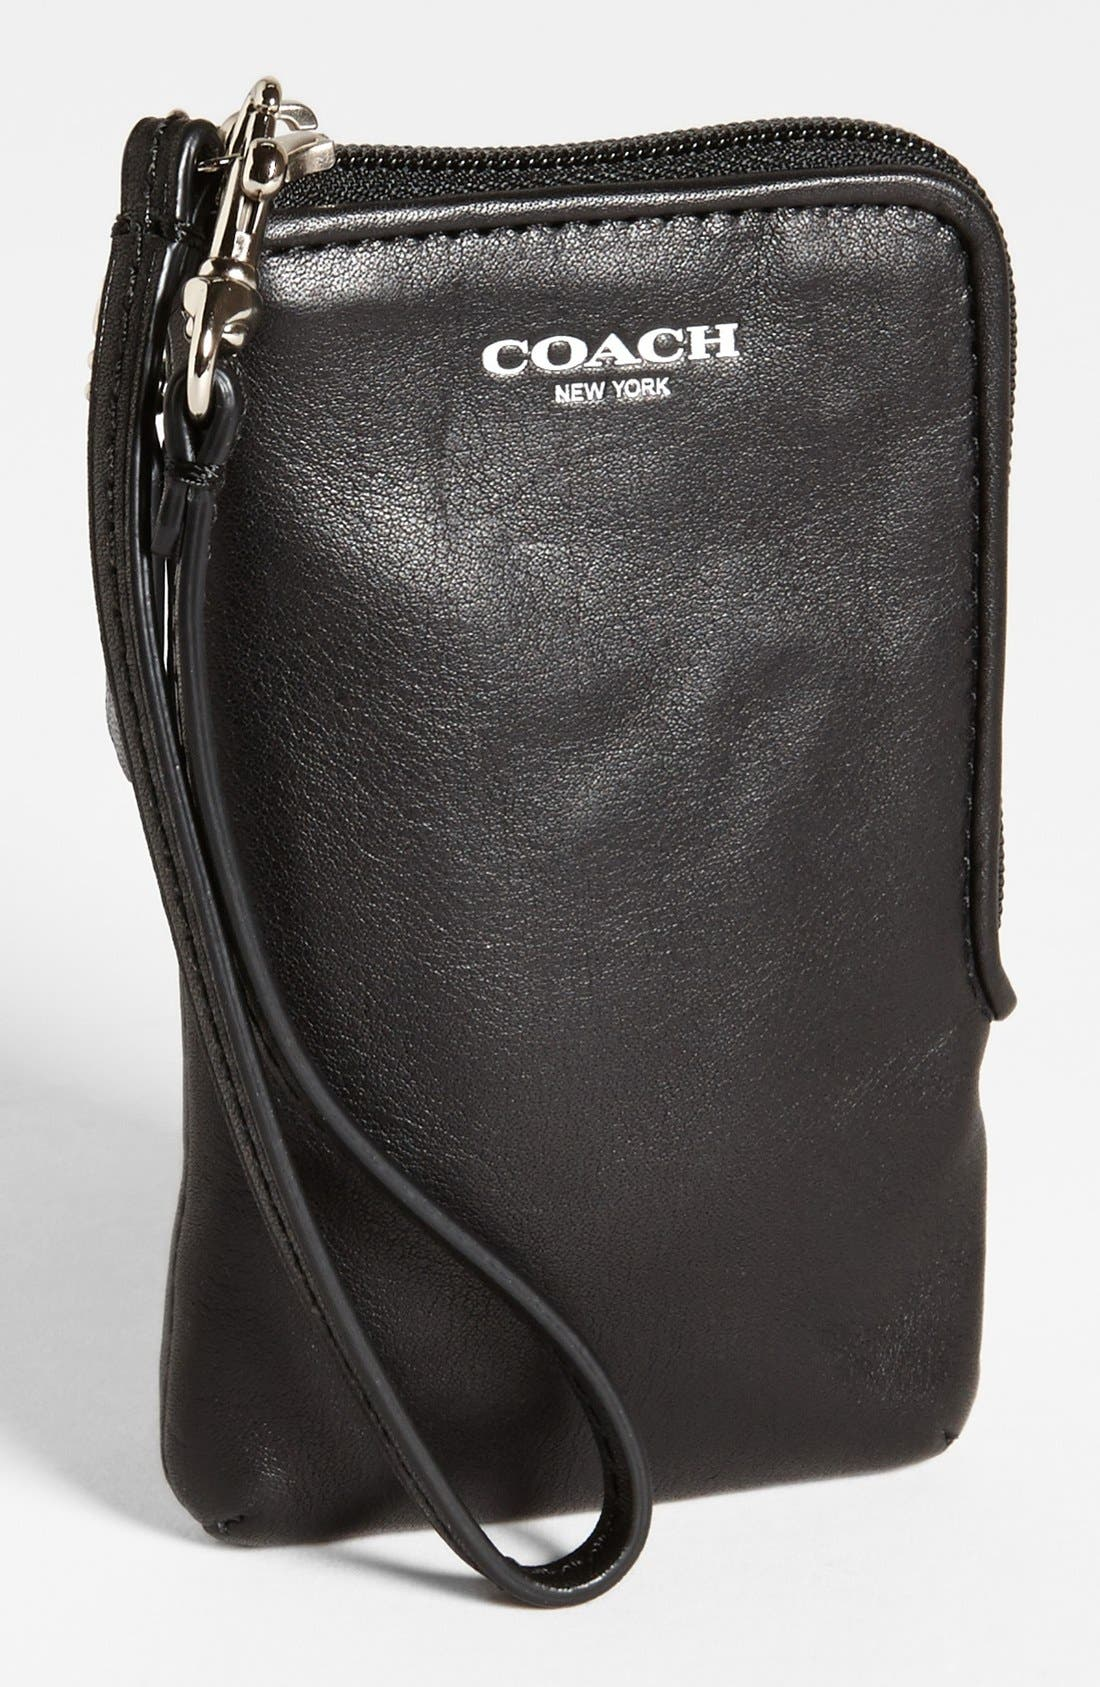 Alternate Image 1 Selected - COACH 'Legacy' Leather Phone Wristlet